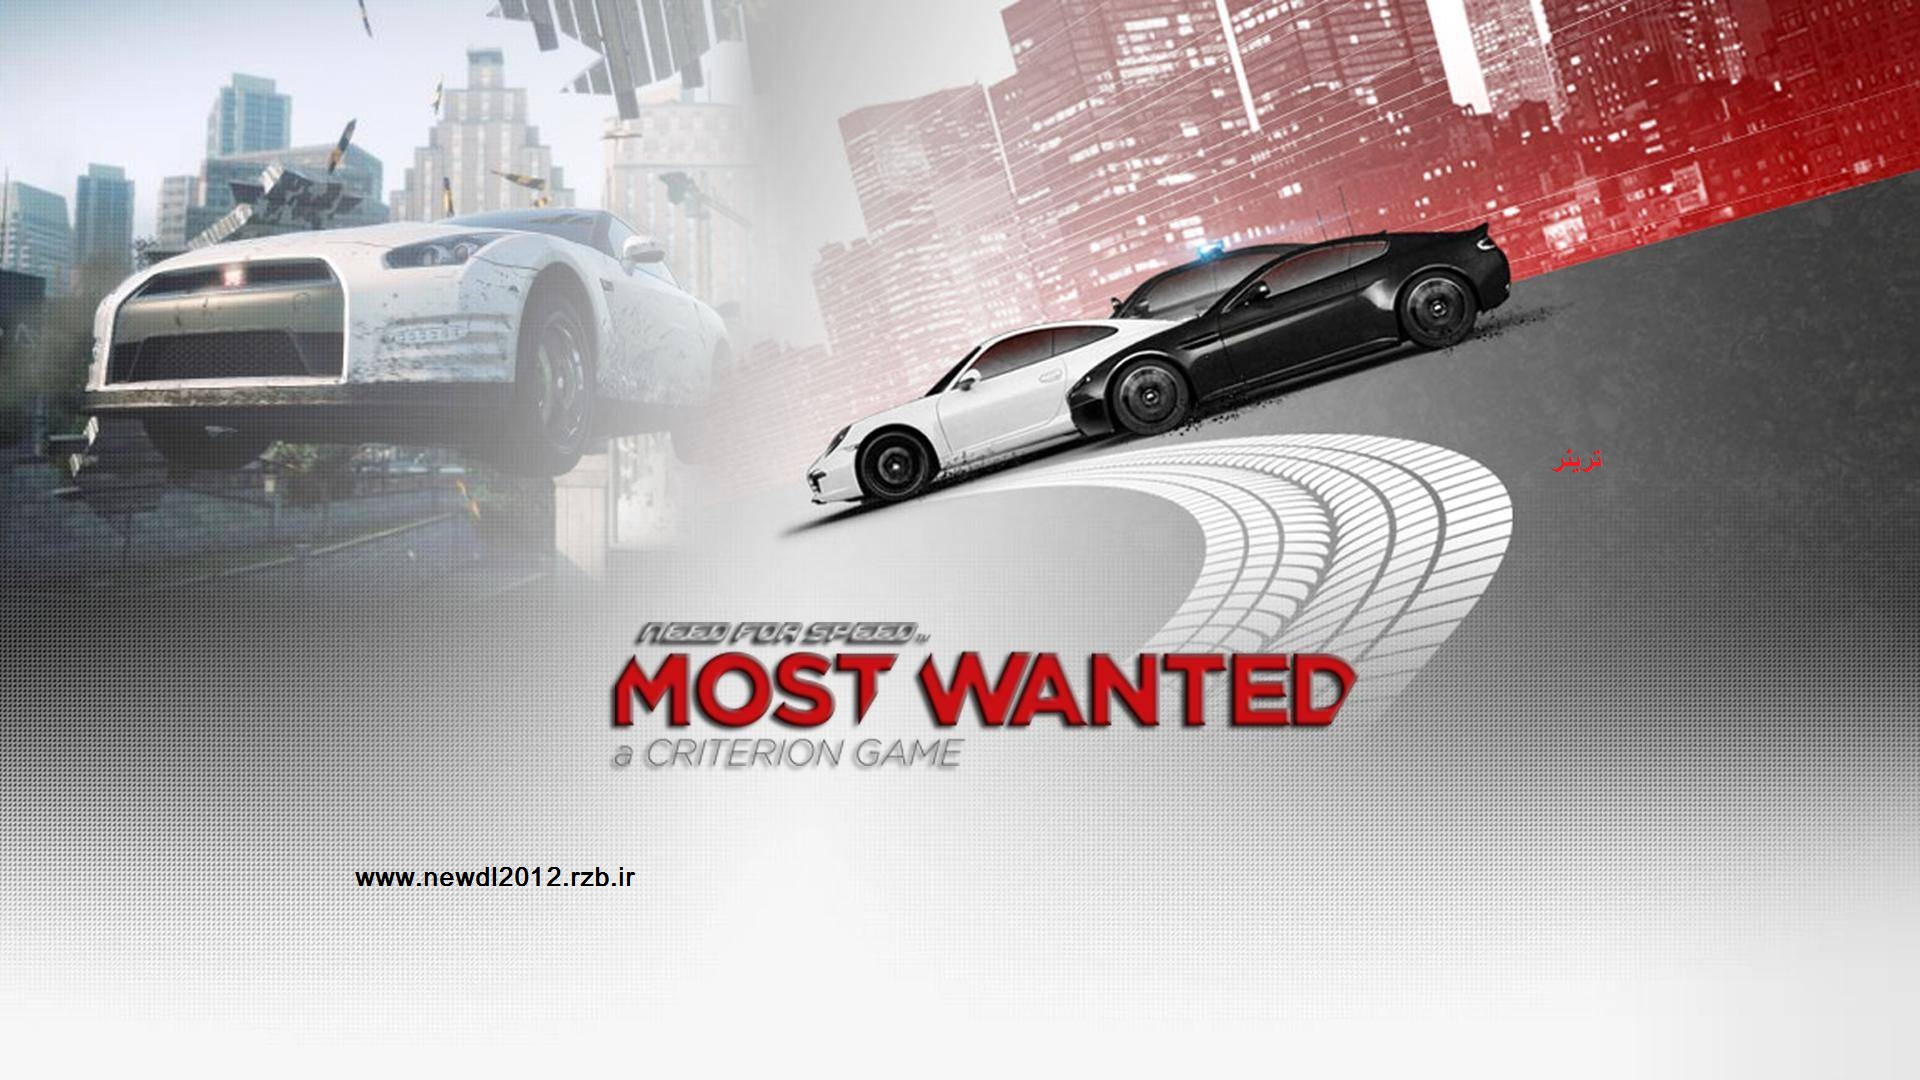 http://s3.picofile.com/file/7635623331/Need_For_Speed_Most_Wanted_2012_Wallpaper.jpg